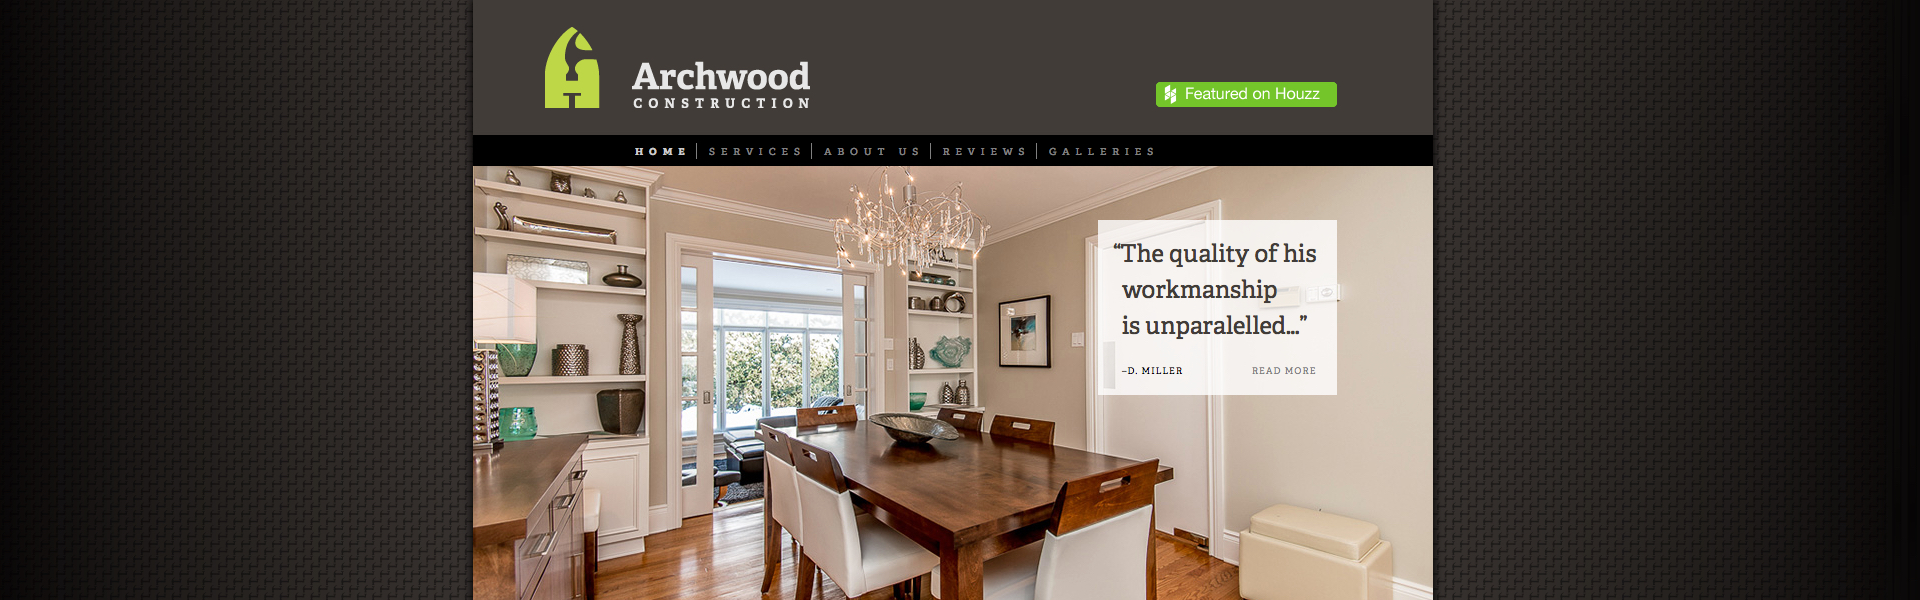 Screen grab of the Archwood Construction website.